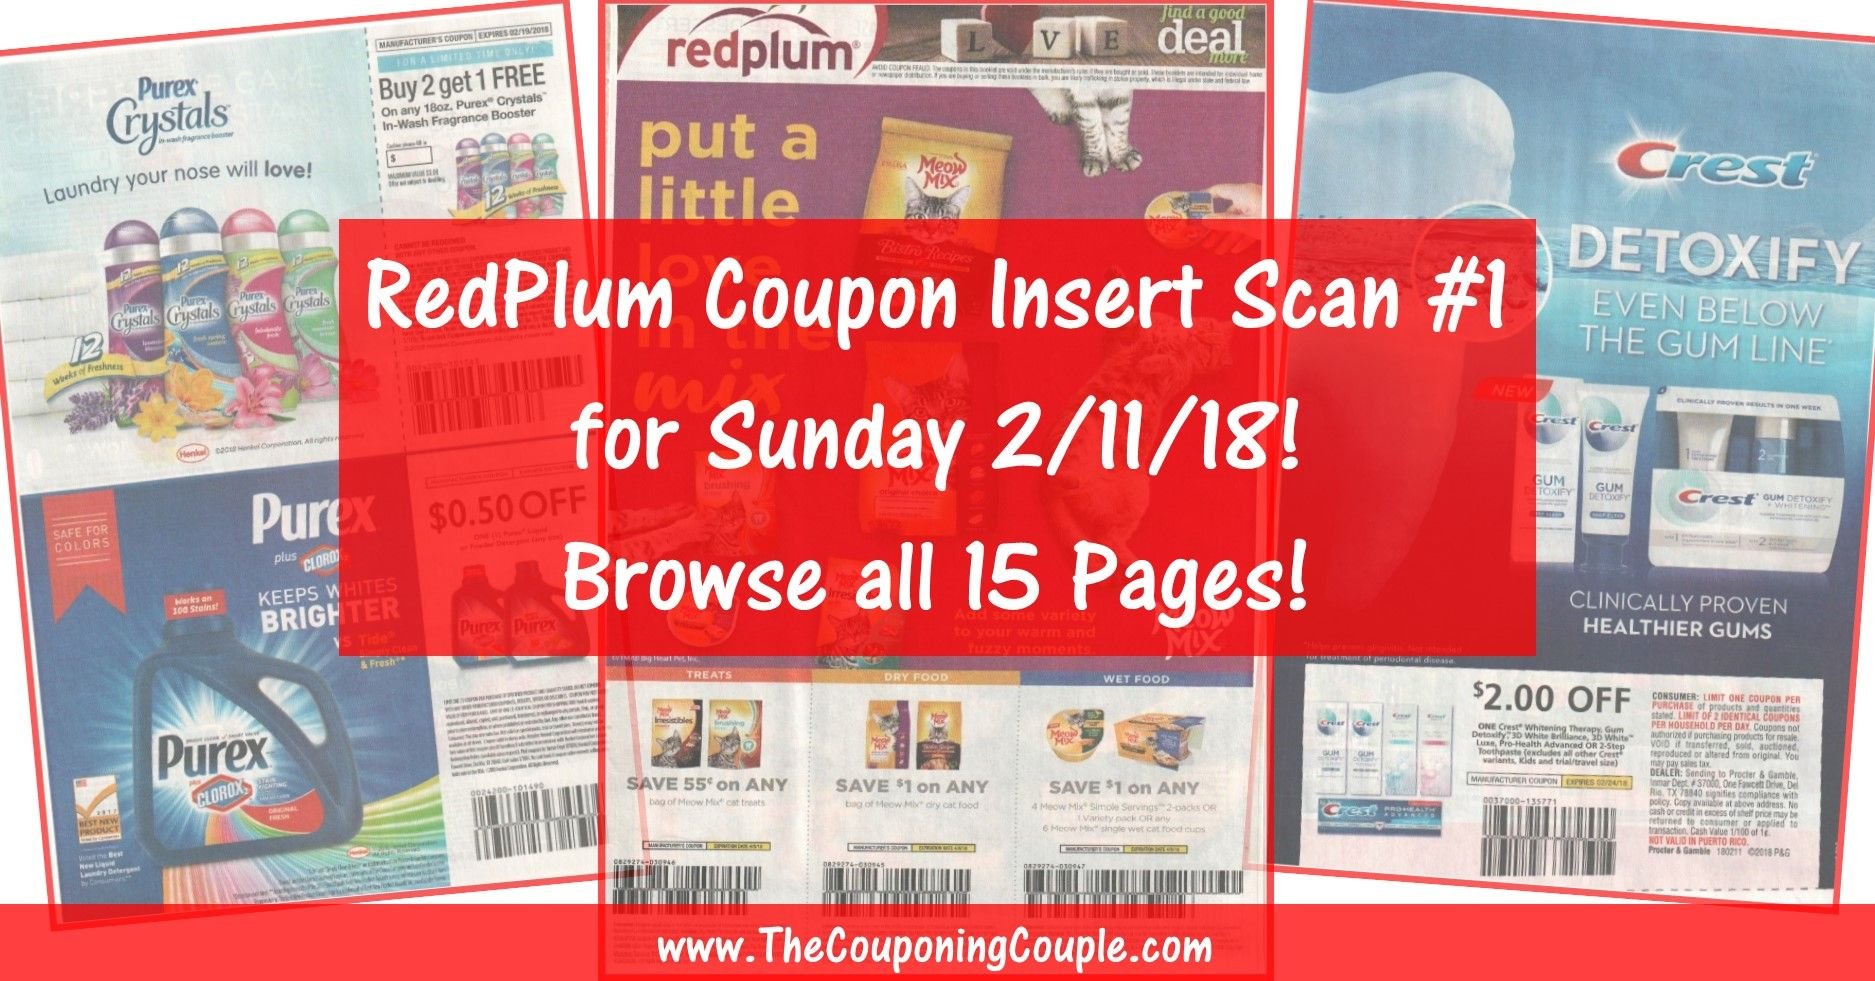 Want To See The Exact Coupons We Are Expecting In Sunday S 2 11 Redplum 1 Coupon Insert Check Out All 15 Pag Coupon Inserts Smartsource Smartsource Coupons